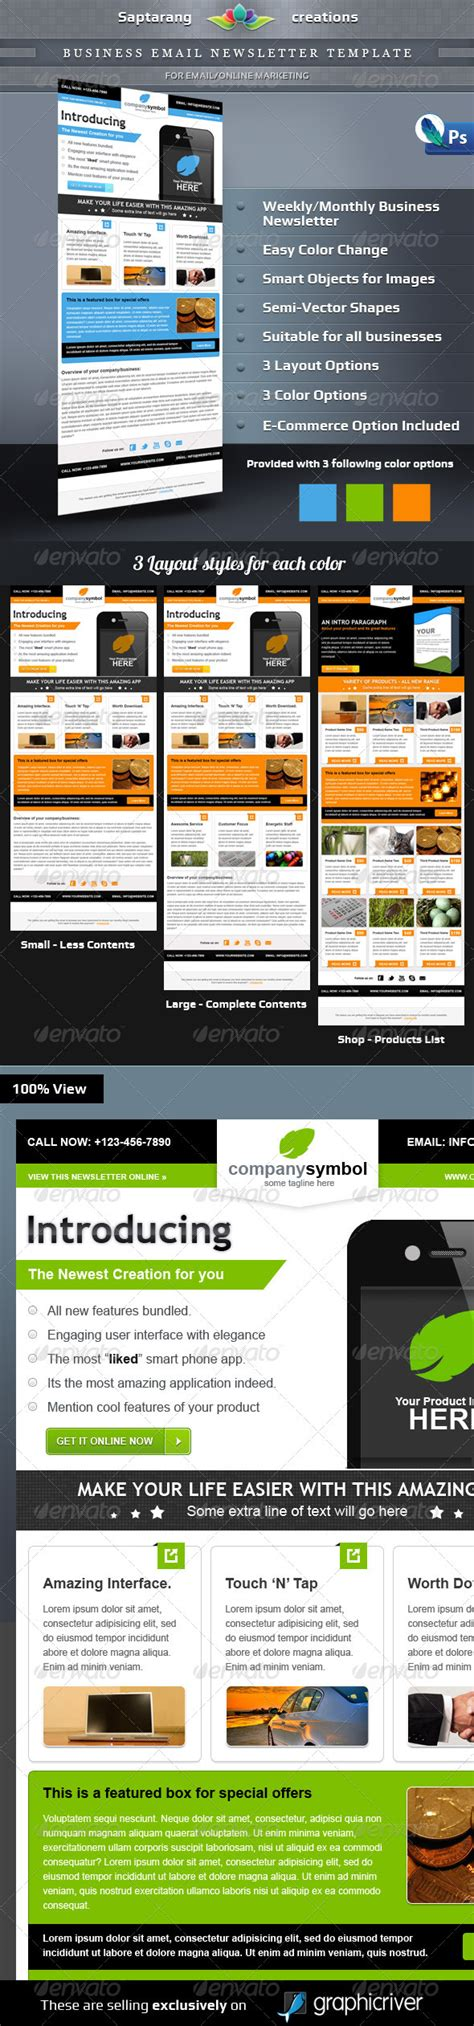 Business Email Newsletter Template By Saptarang Graphicriver Custom Email Marketing Templates